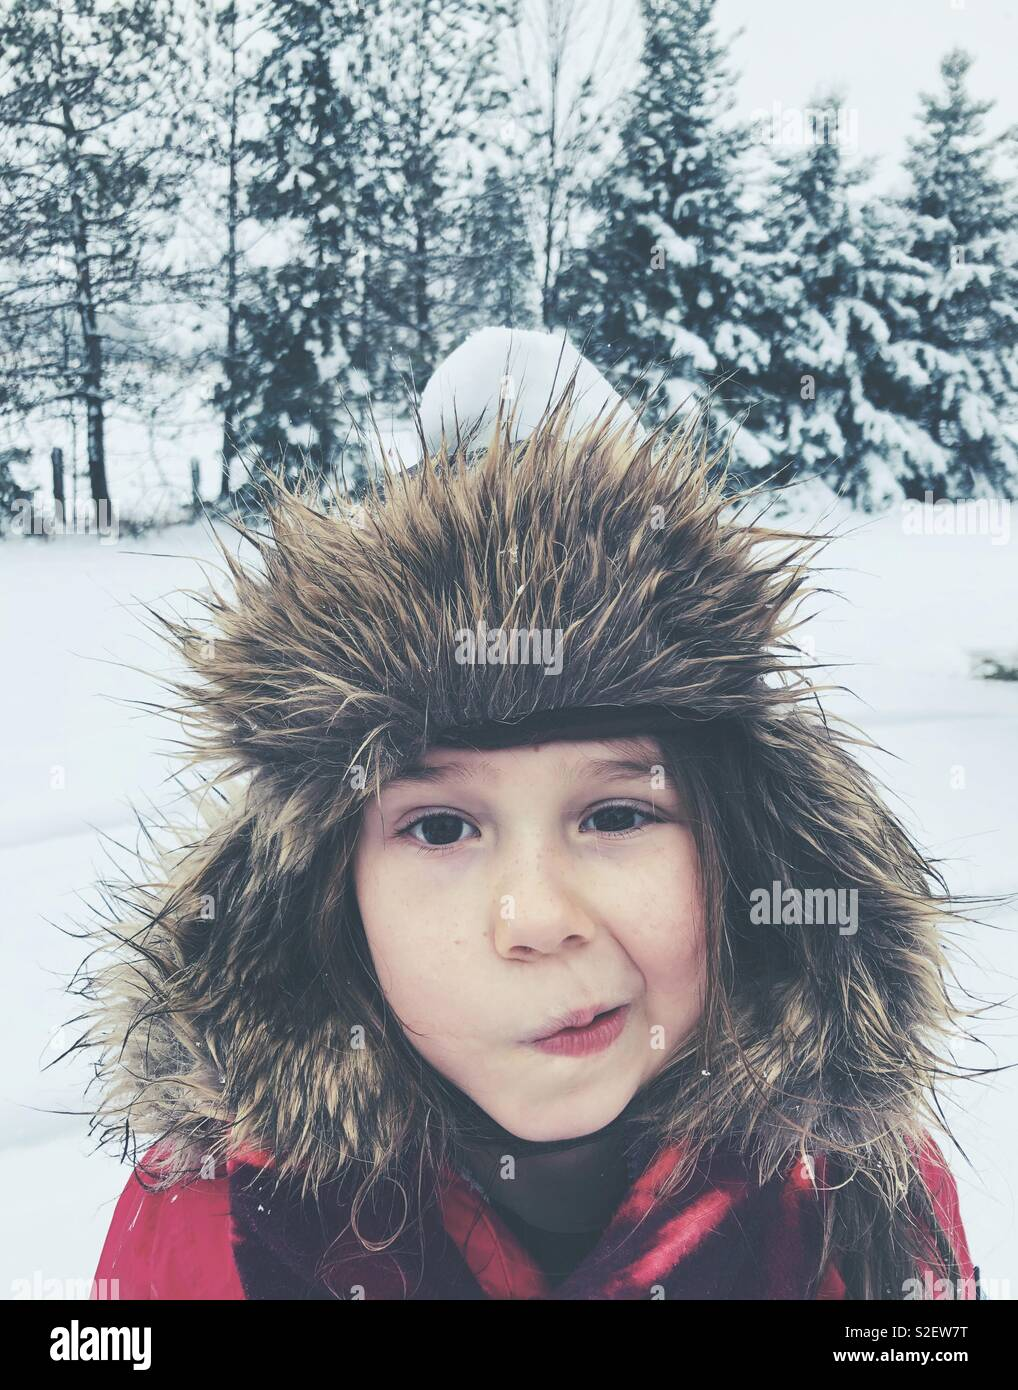 6 year old girl wearing furry trapper hat outside in the snow with snowball on head and funny expression - Stock Image